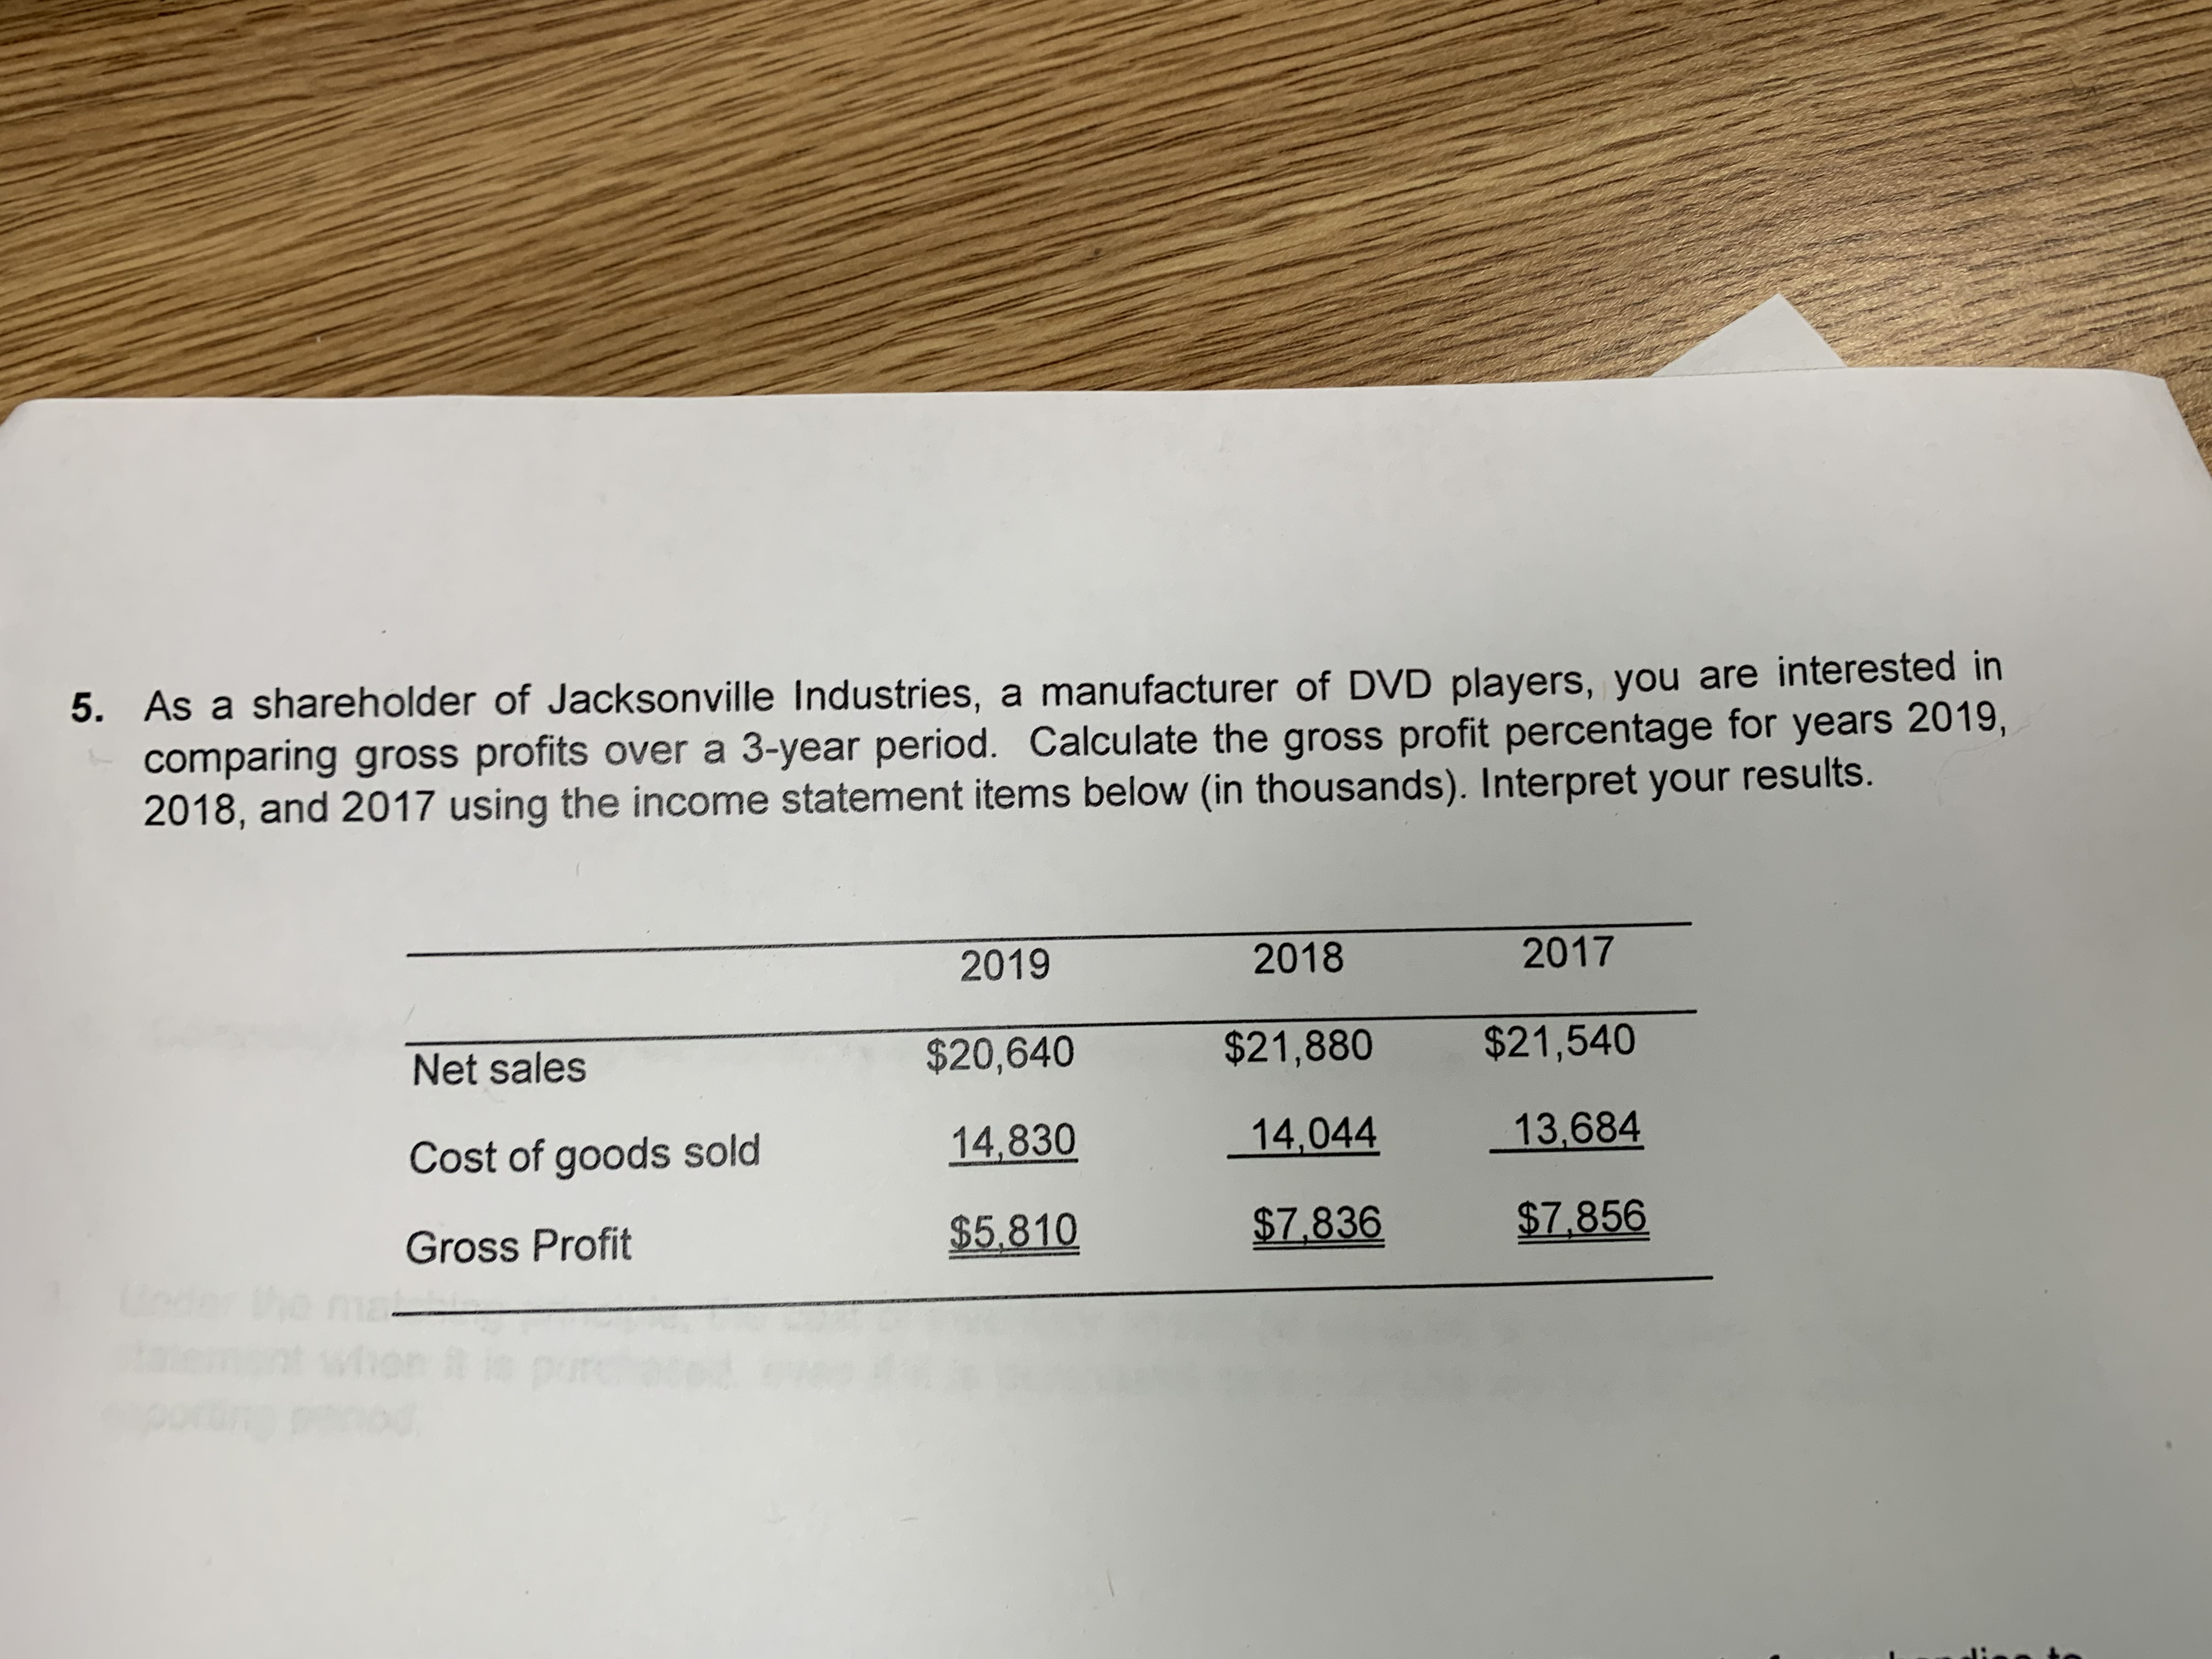 5. As a shareholder of Jacksonville Industries, a manufacturer of DVD players, you are interested in comparing gross profits over a 3-year period. Calculate the gross profit percentage for years 2019, 2018, and 2017 using the income statement items below (in thousands). Interpret your results. 2019 2018 2017 Net sales $20,640 $21,880 $21,540 Cost of goods sold 14,830 14,044 13.684 Gross Profit $5.810 $7.836 $7.856 der